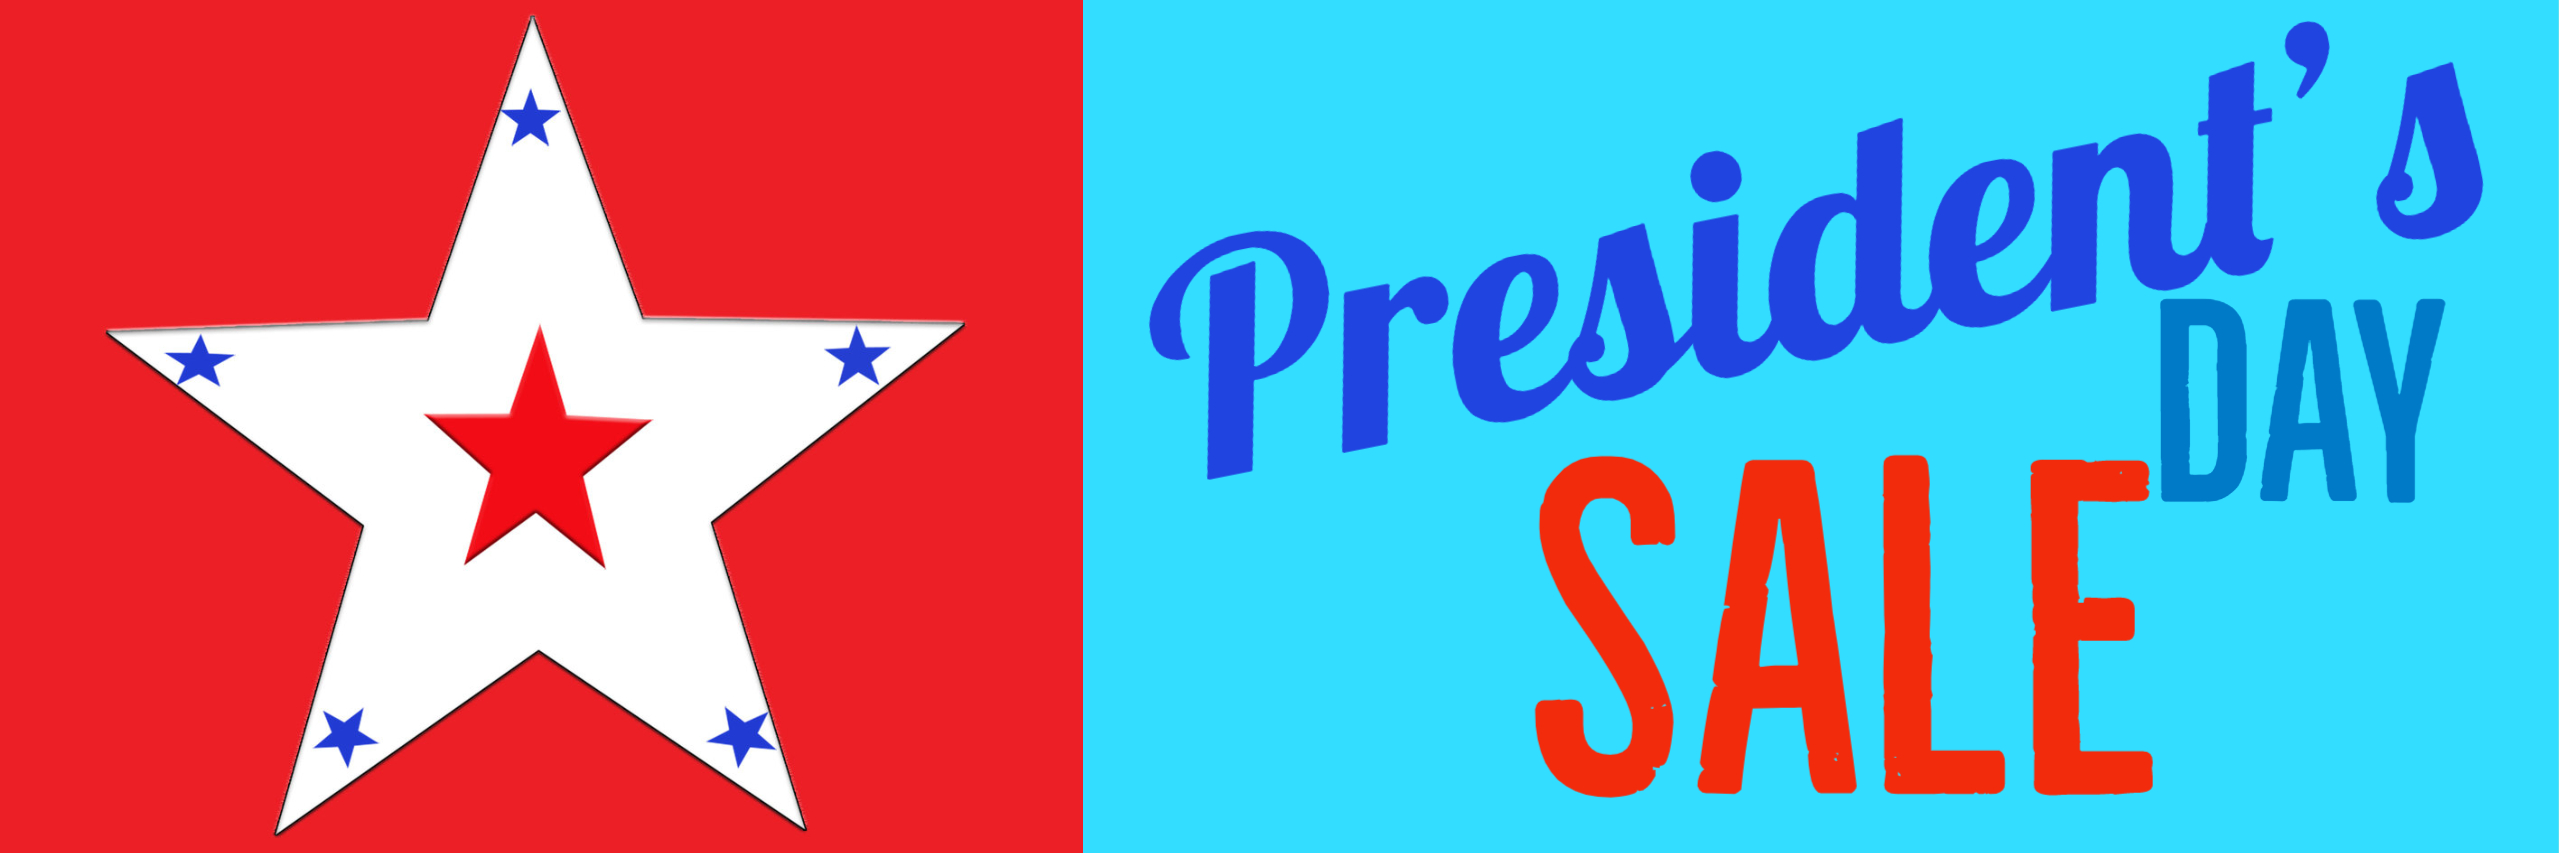 Presidents Day Web Banner